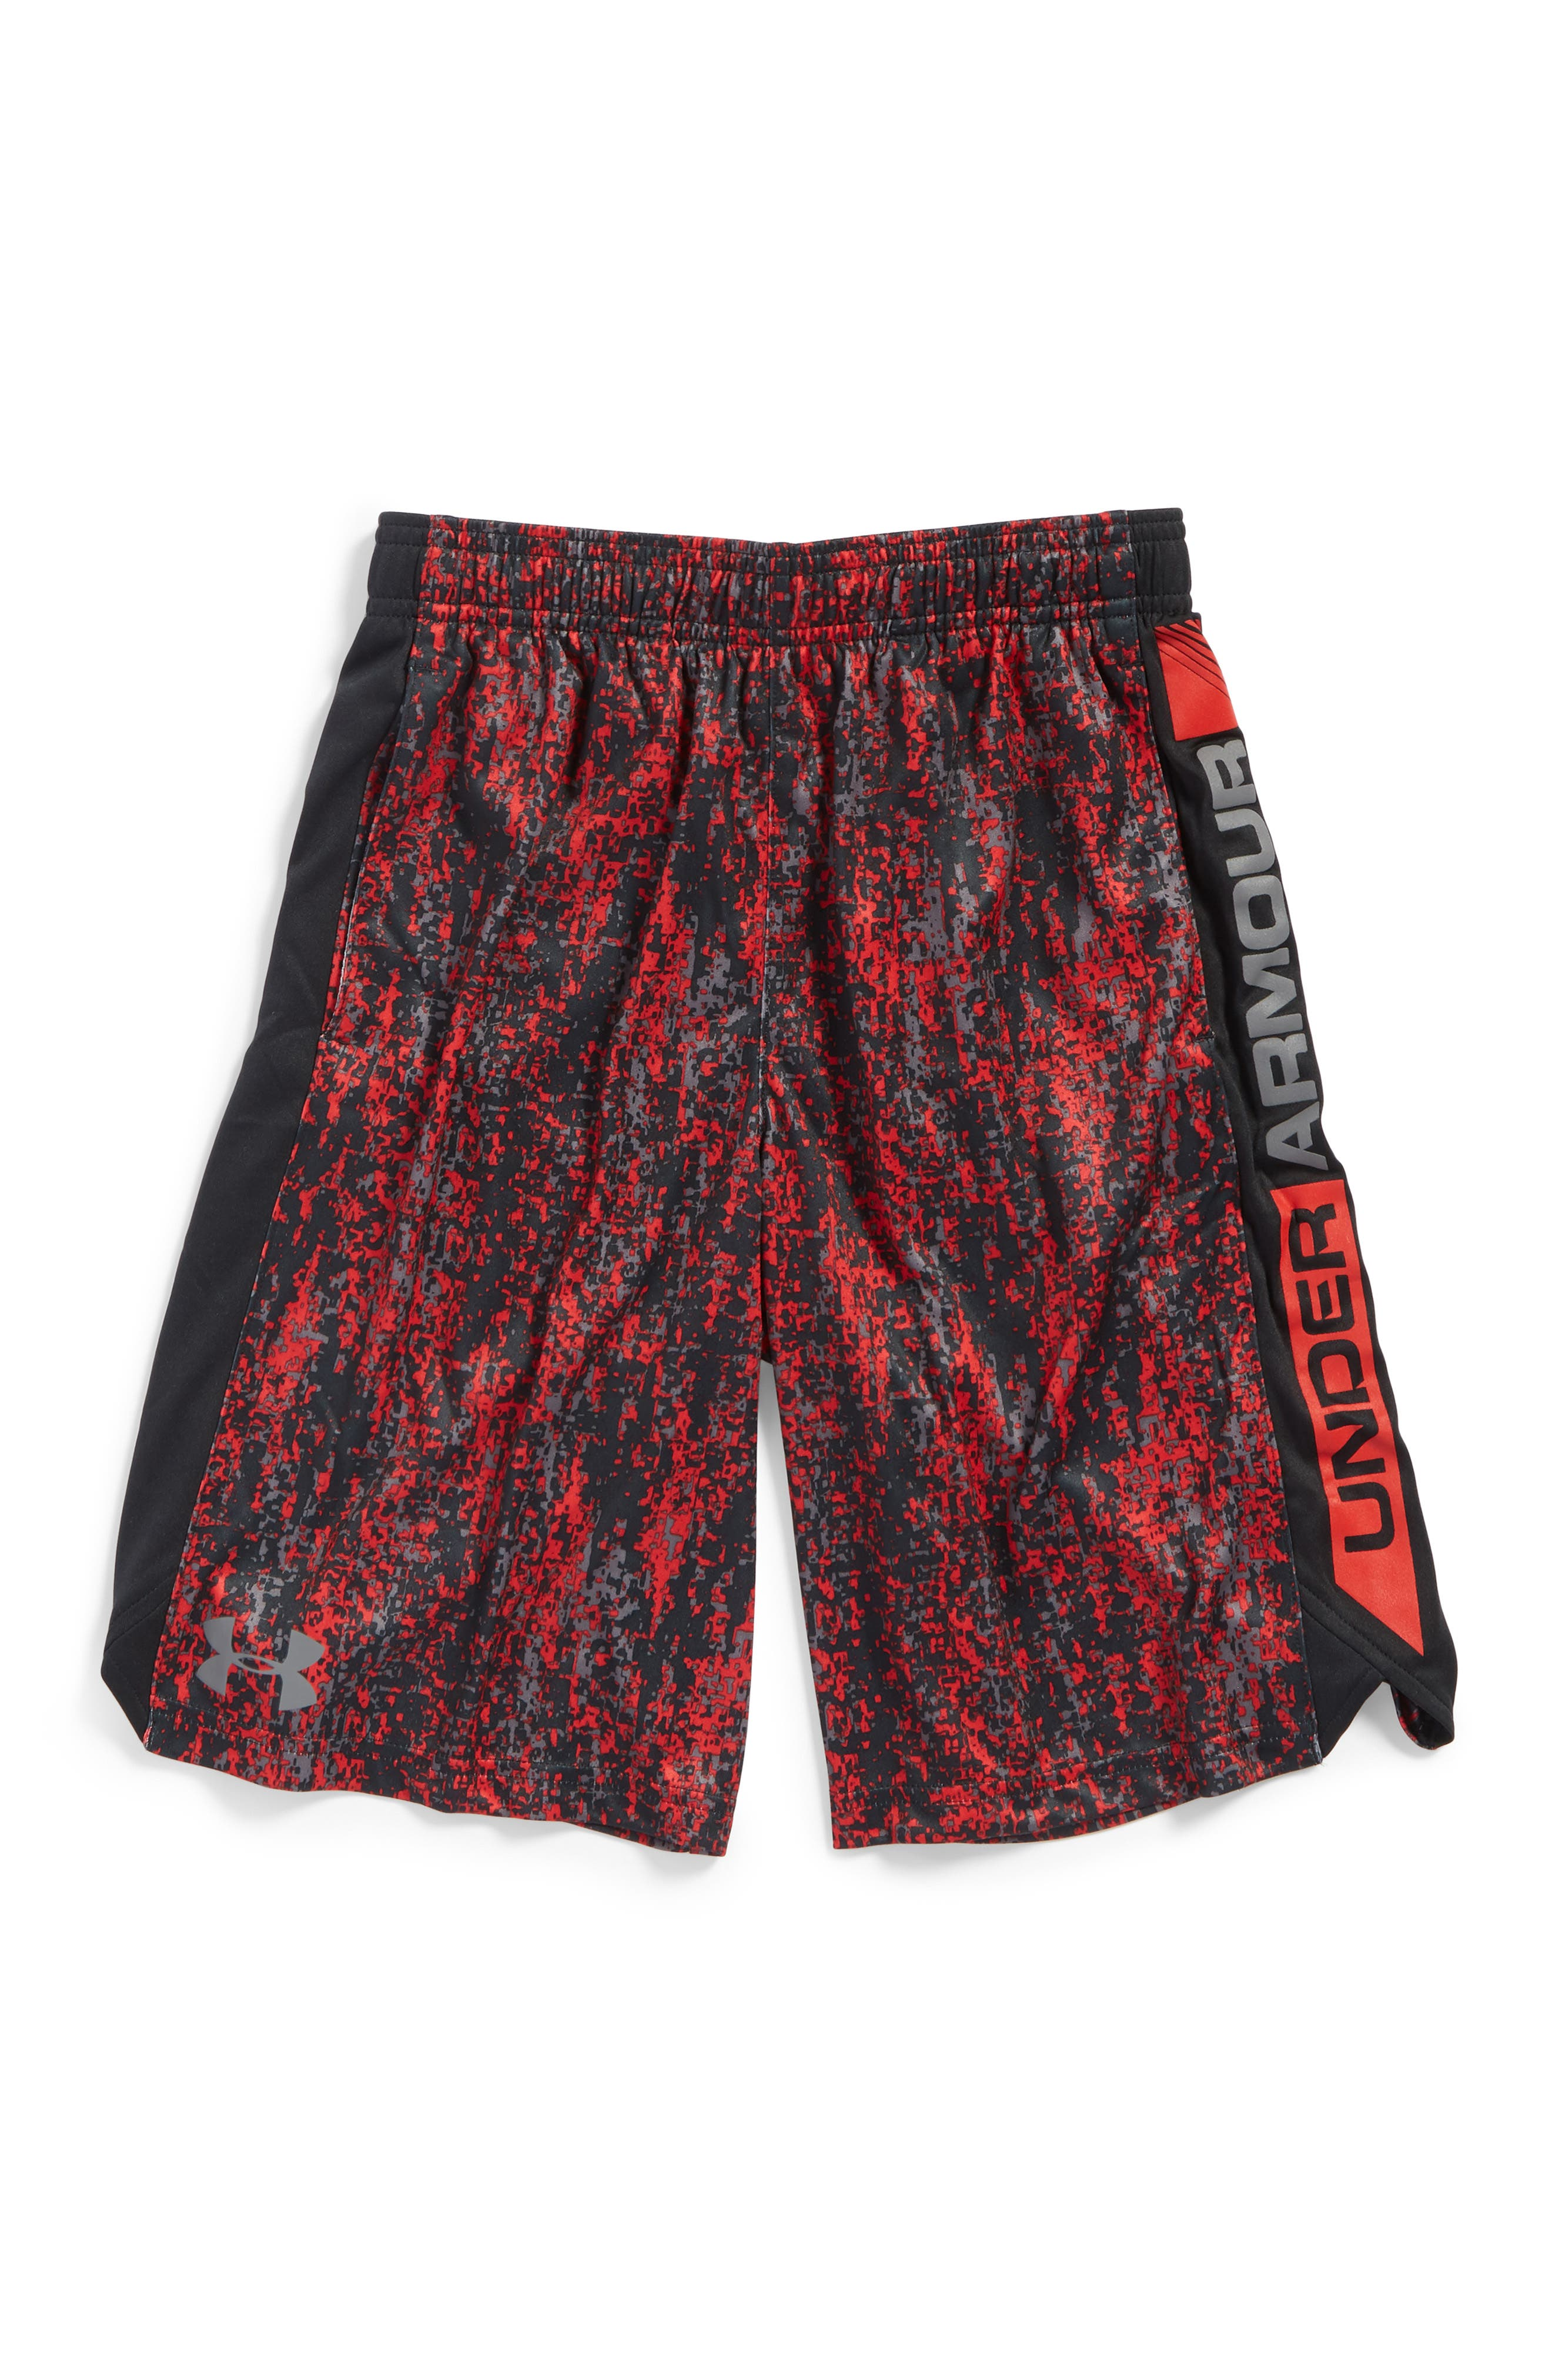 Main Image - Under Armour Eliminator Athletic HeatGear® Shorts (Little Boys & Big Boys)